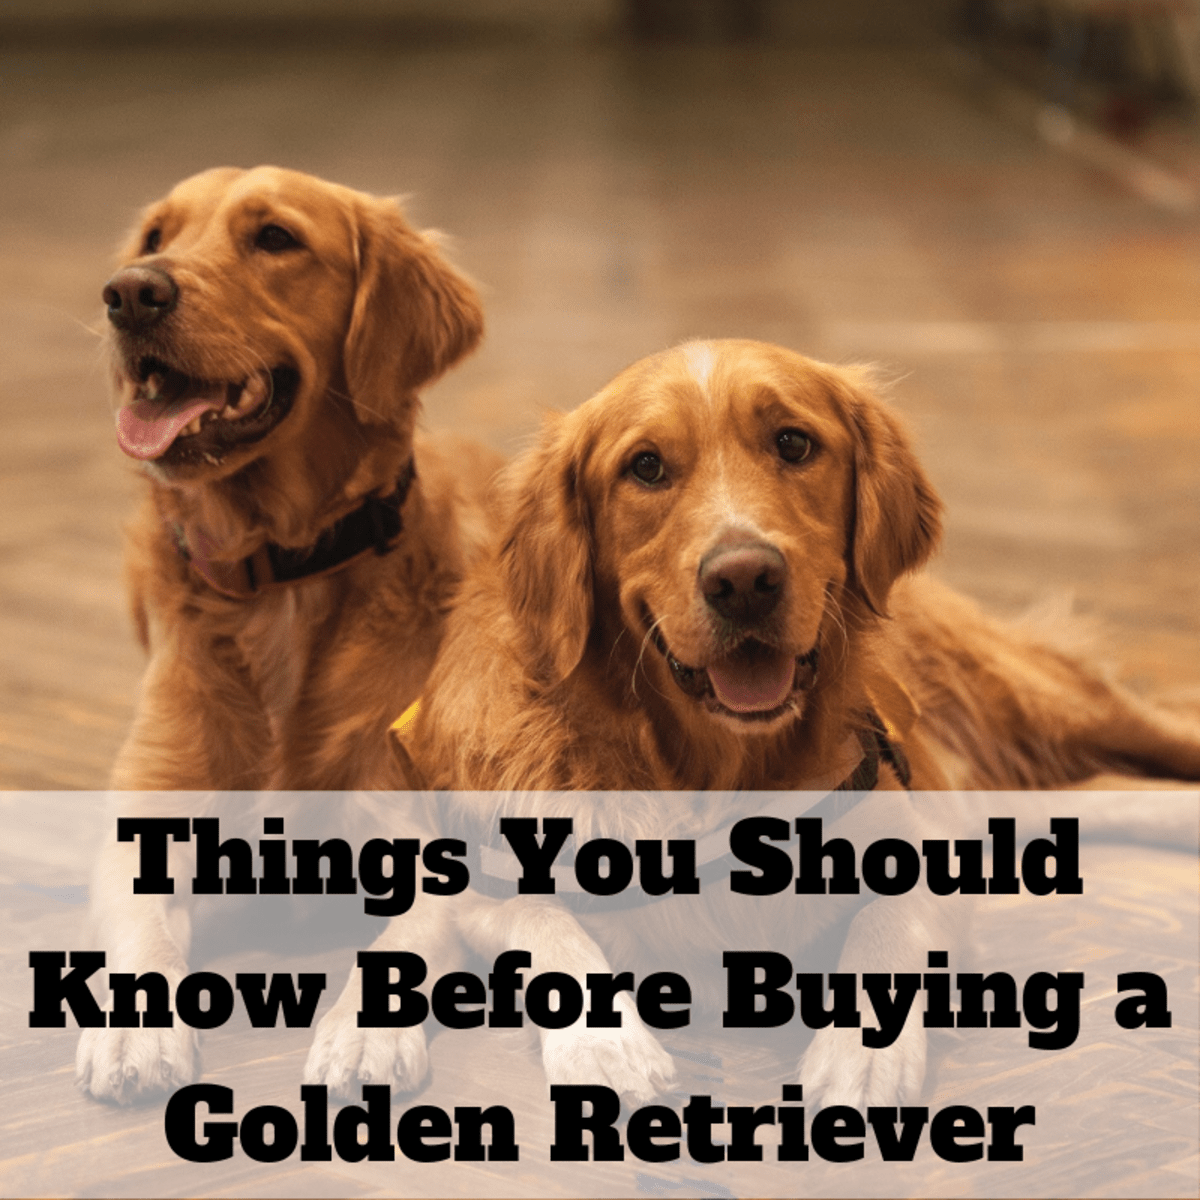 13 Things To Consider Before Buying A Golden Retriever Pethelpful By Fellow Animal Lovers And Experts